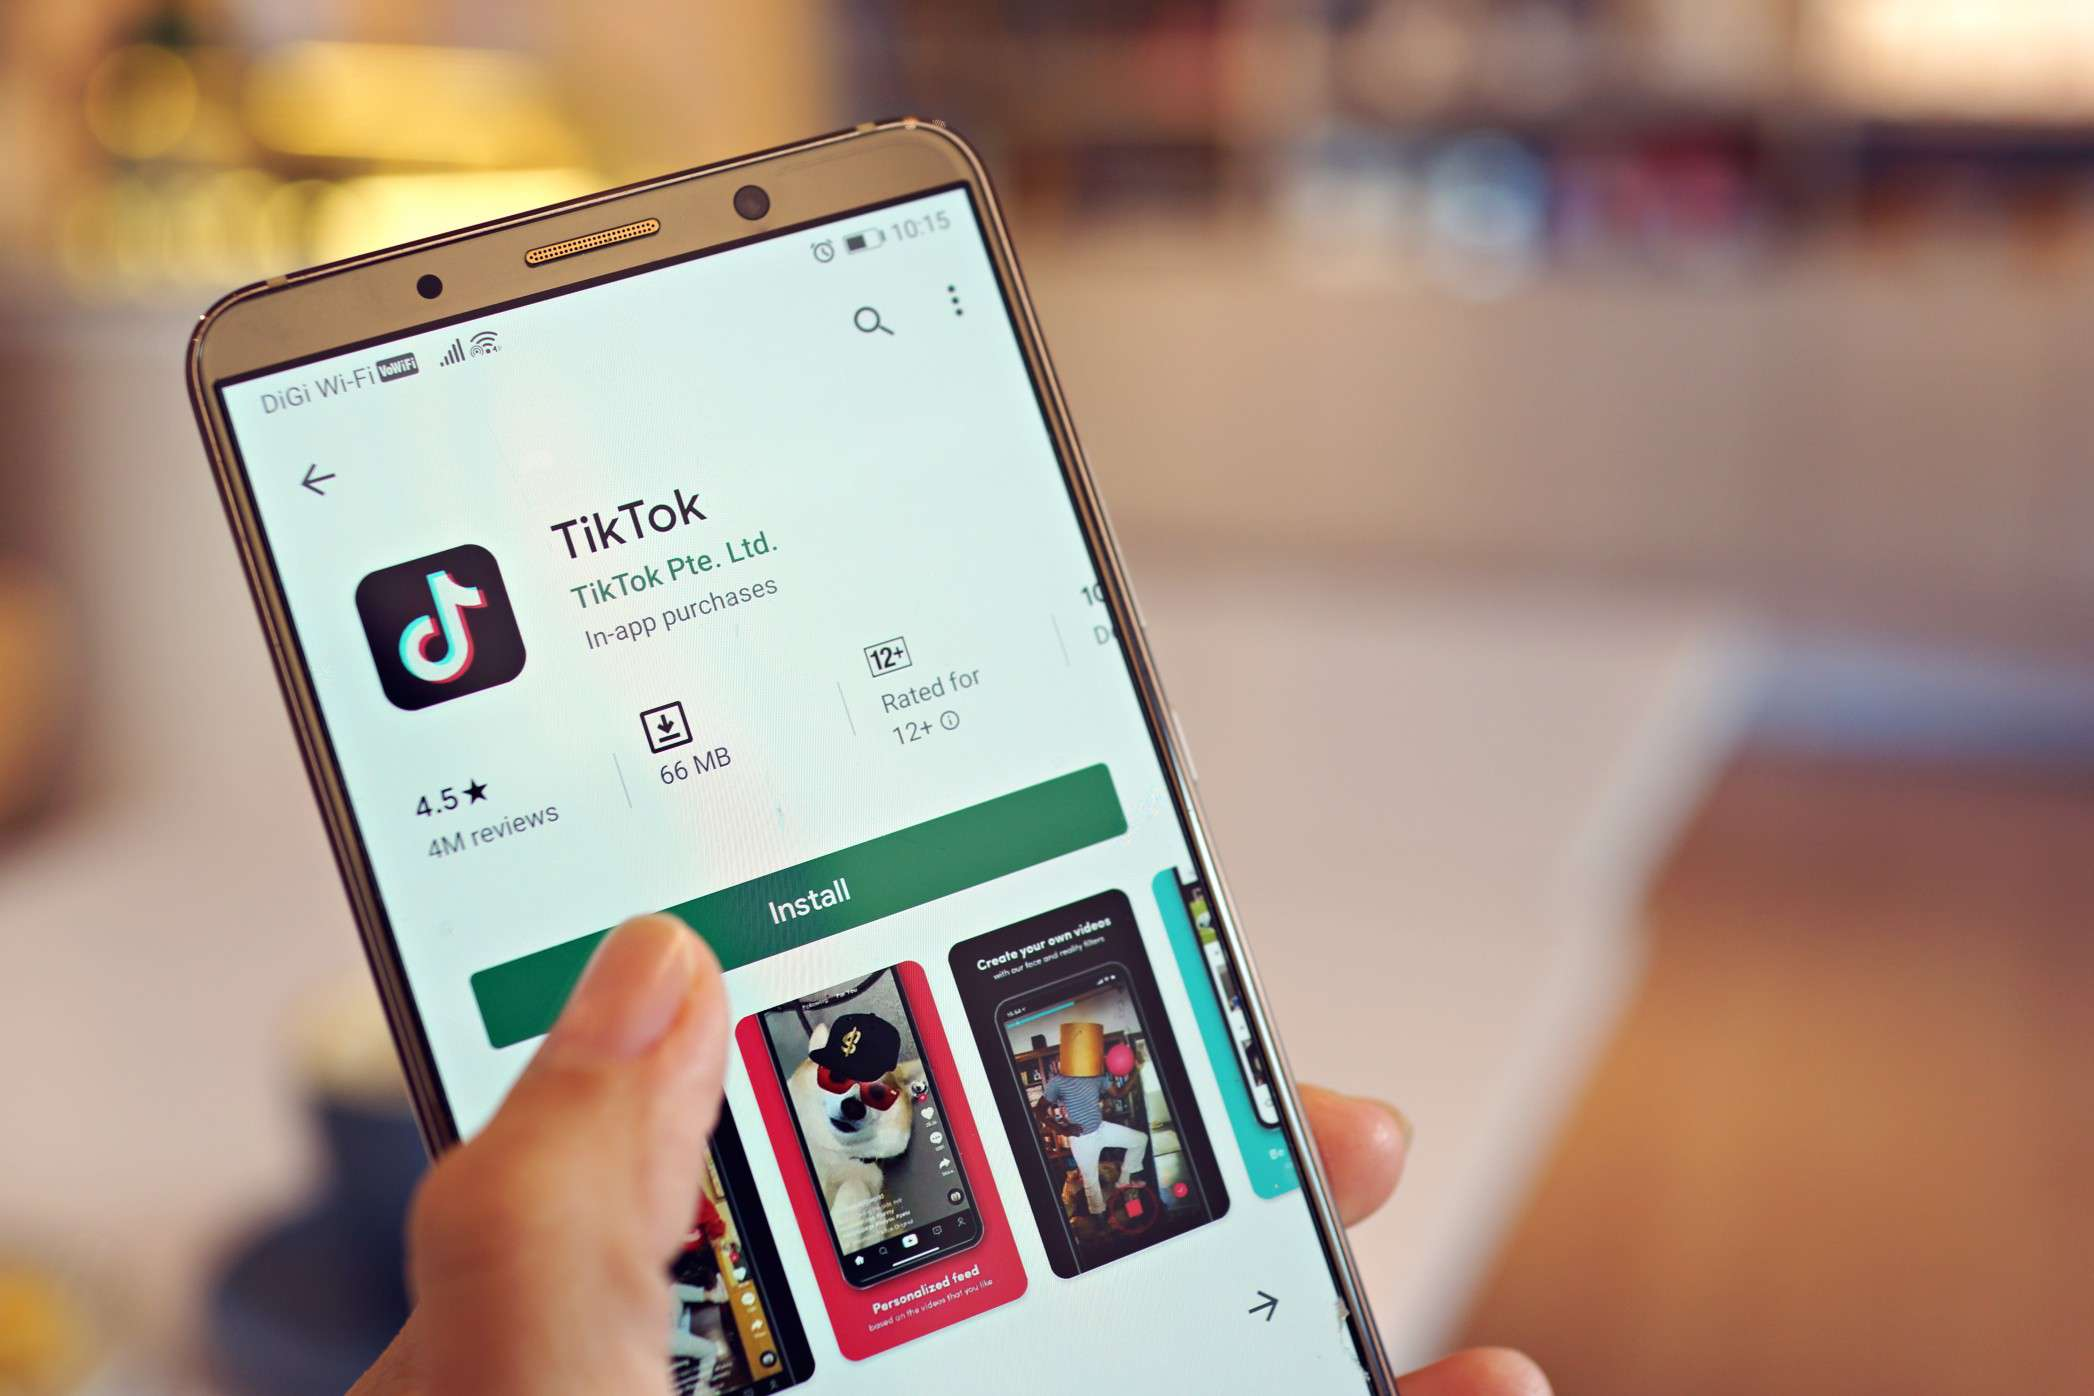 A hand holding a smartphone with the TikTop app show in an App Store.